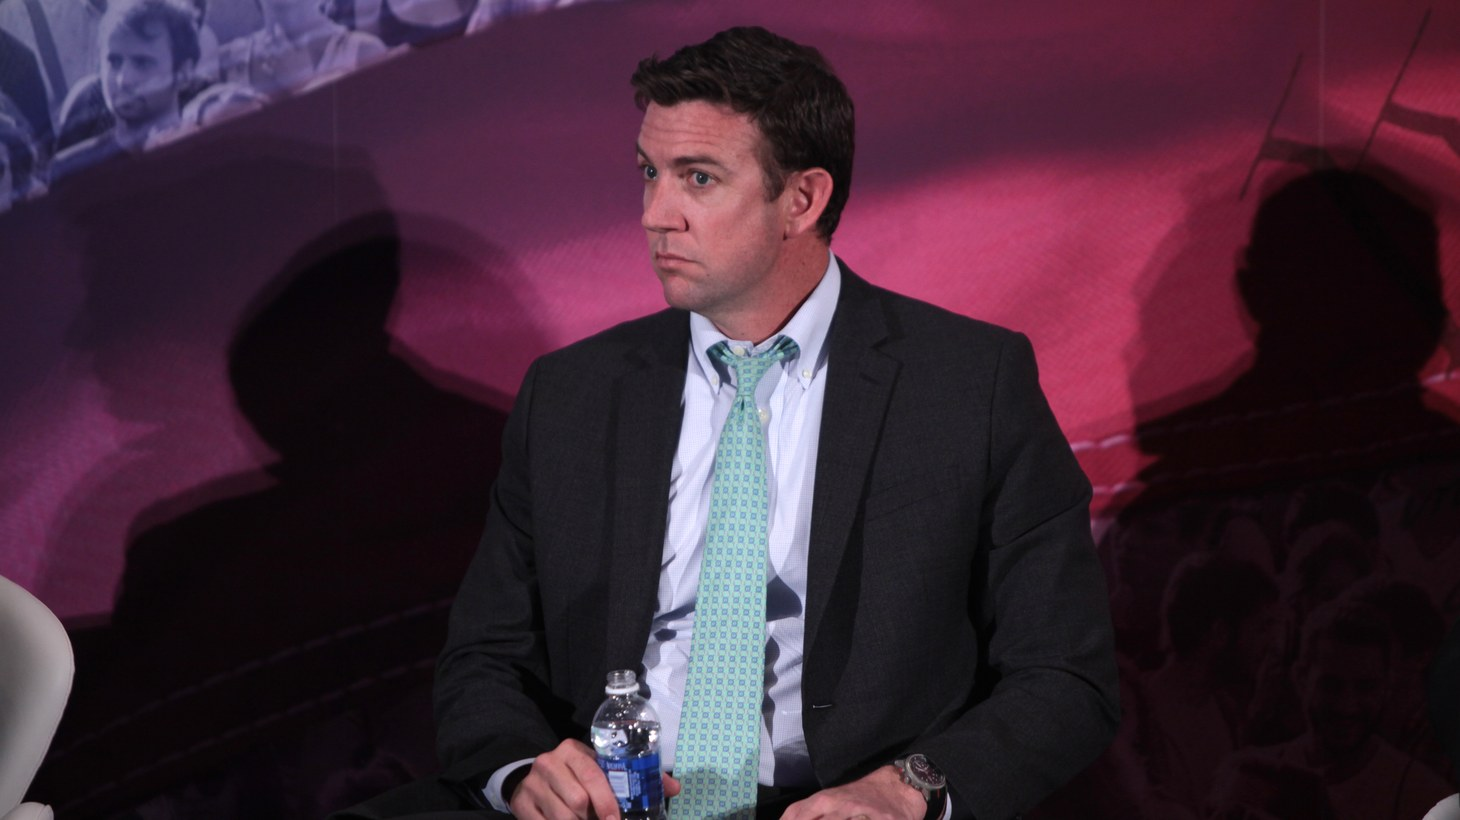 U.S. Congressman Duncan Hunter of California speaking at the 2016 Conservative Political Action Conference (CPAC) in National Harbor, Maryland.